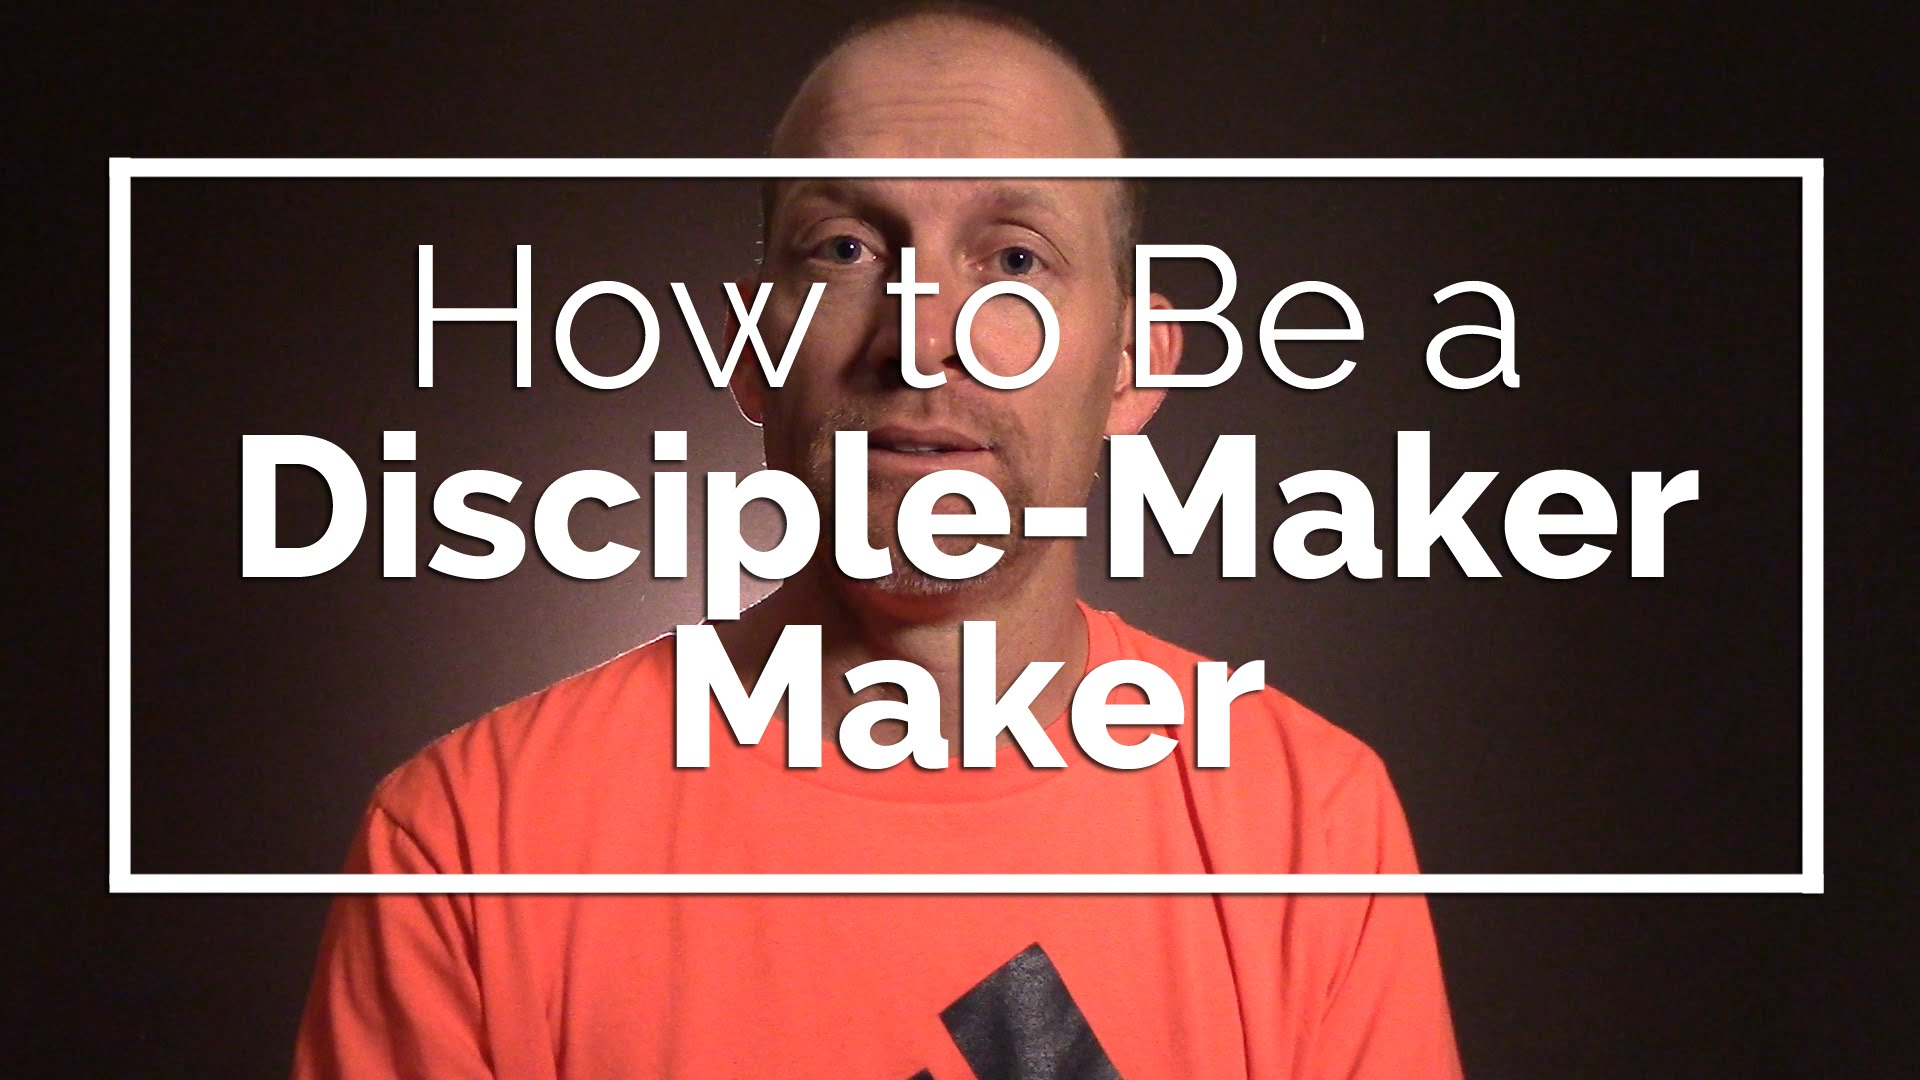 How to Be a Disciple-Maker Maker